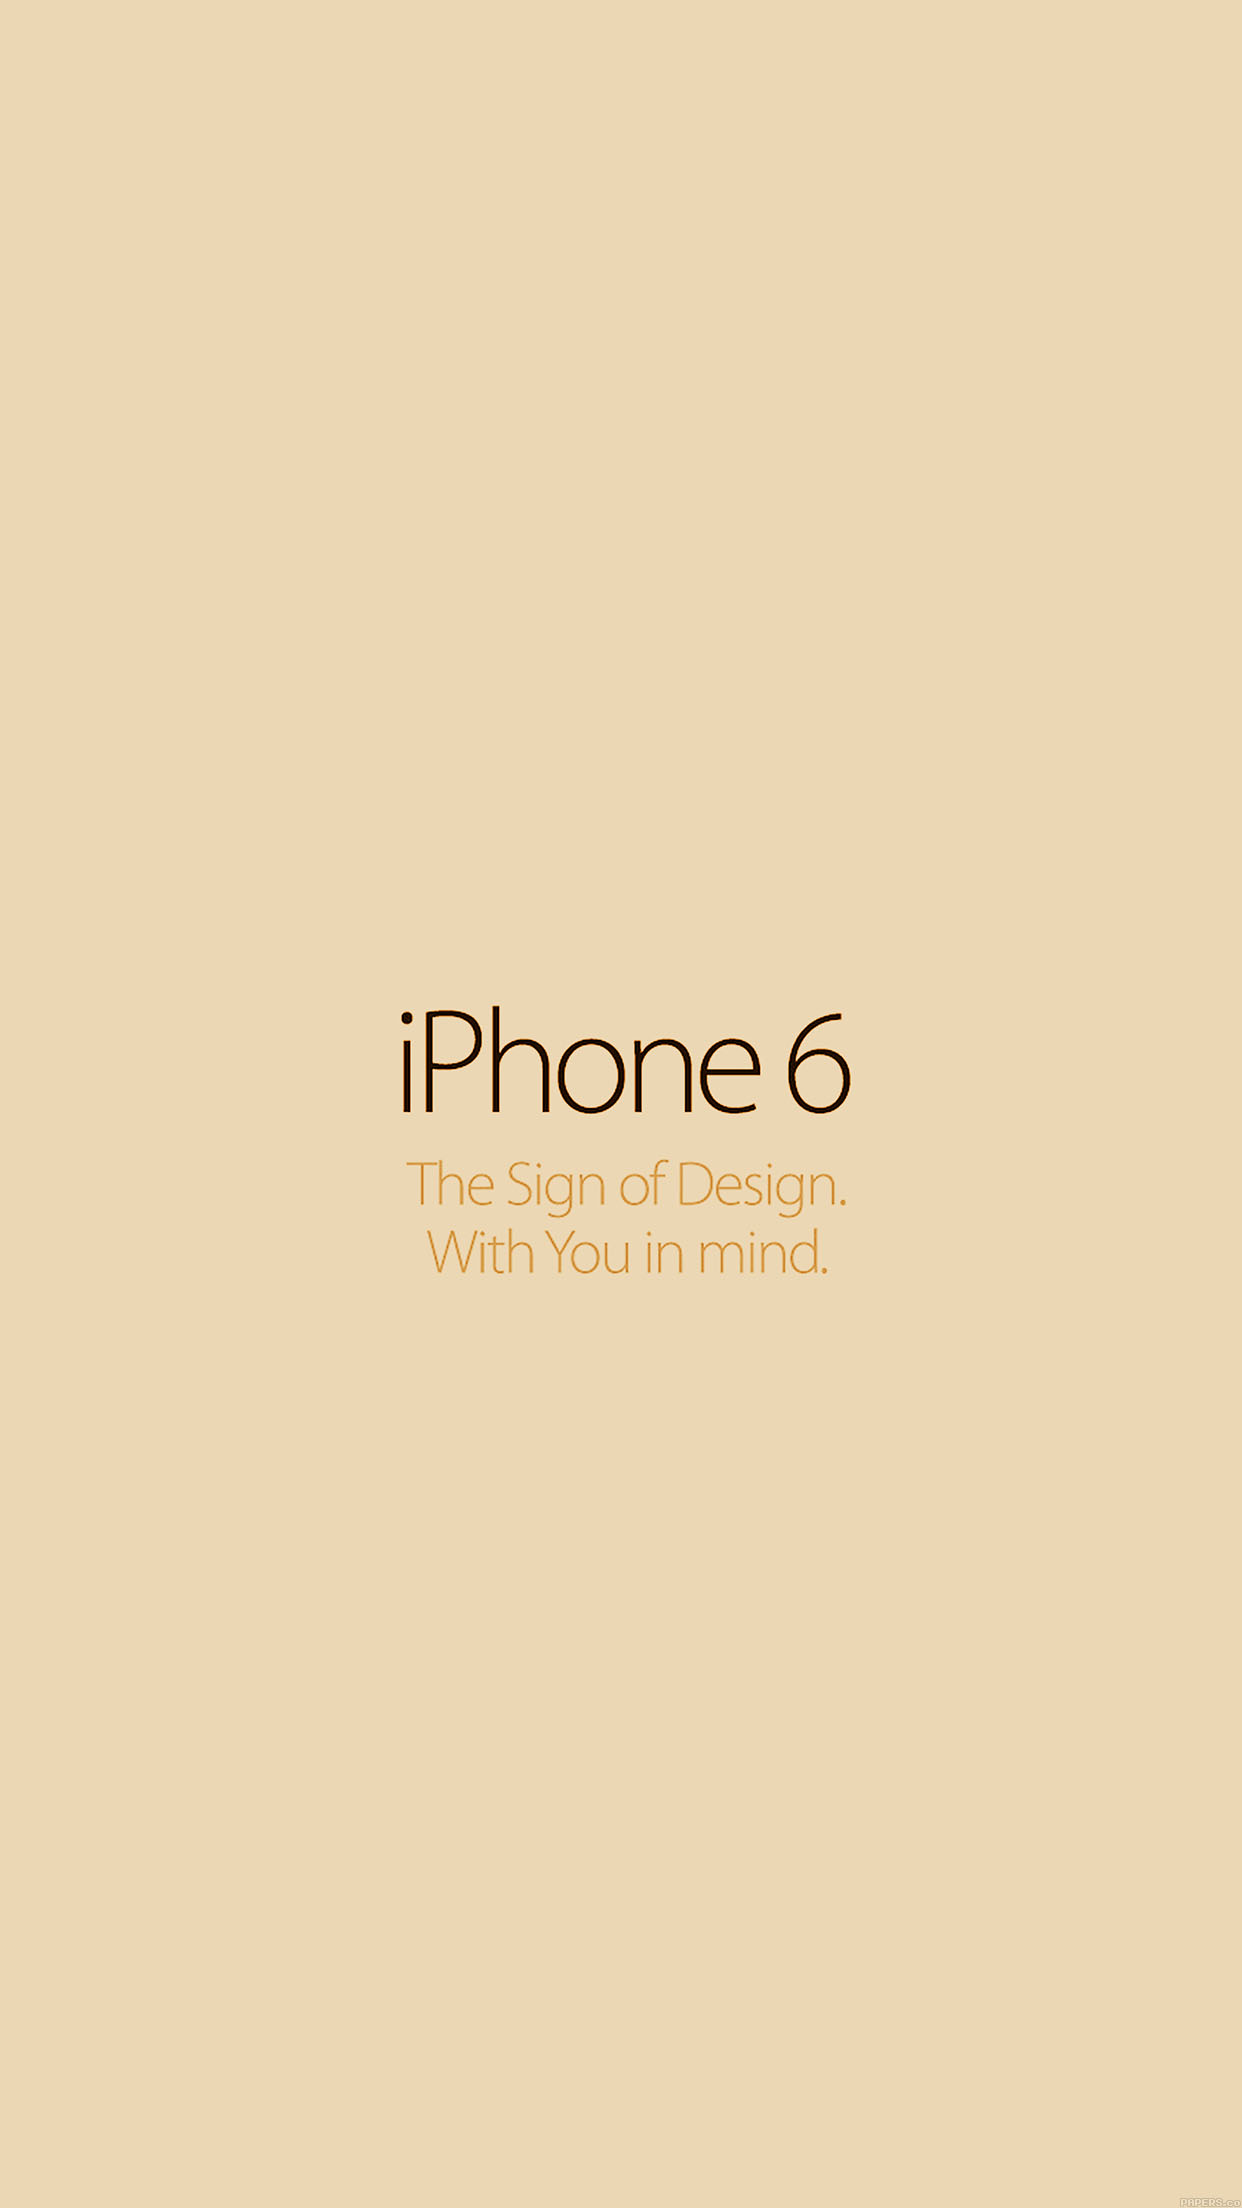 ... -ac60-wallpaper-iphone6-gold-logo-apple-34-iphone6-plus-wallpaper.jpg